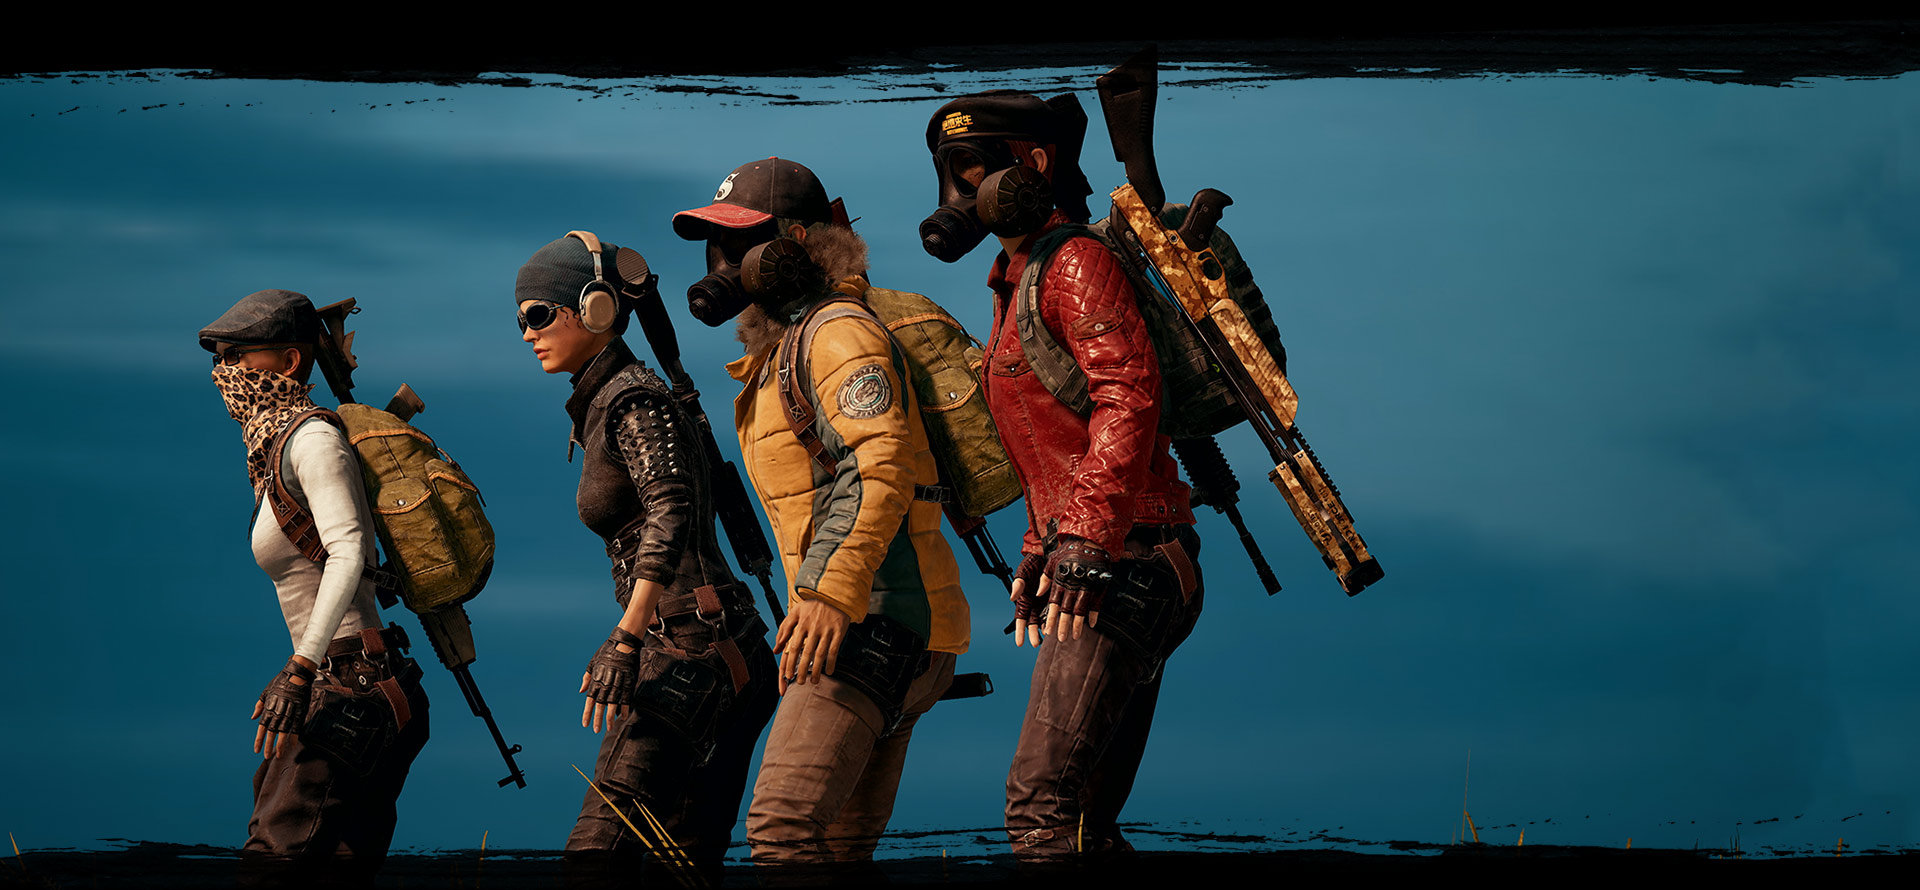 Profile view of 4 playable characters standing next to each other